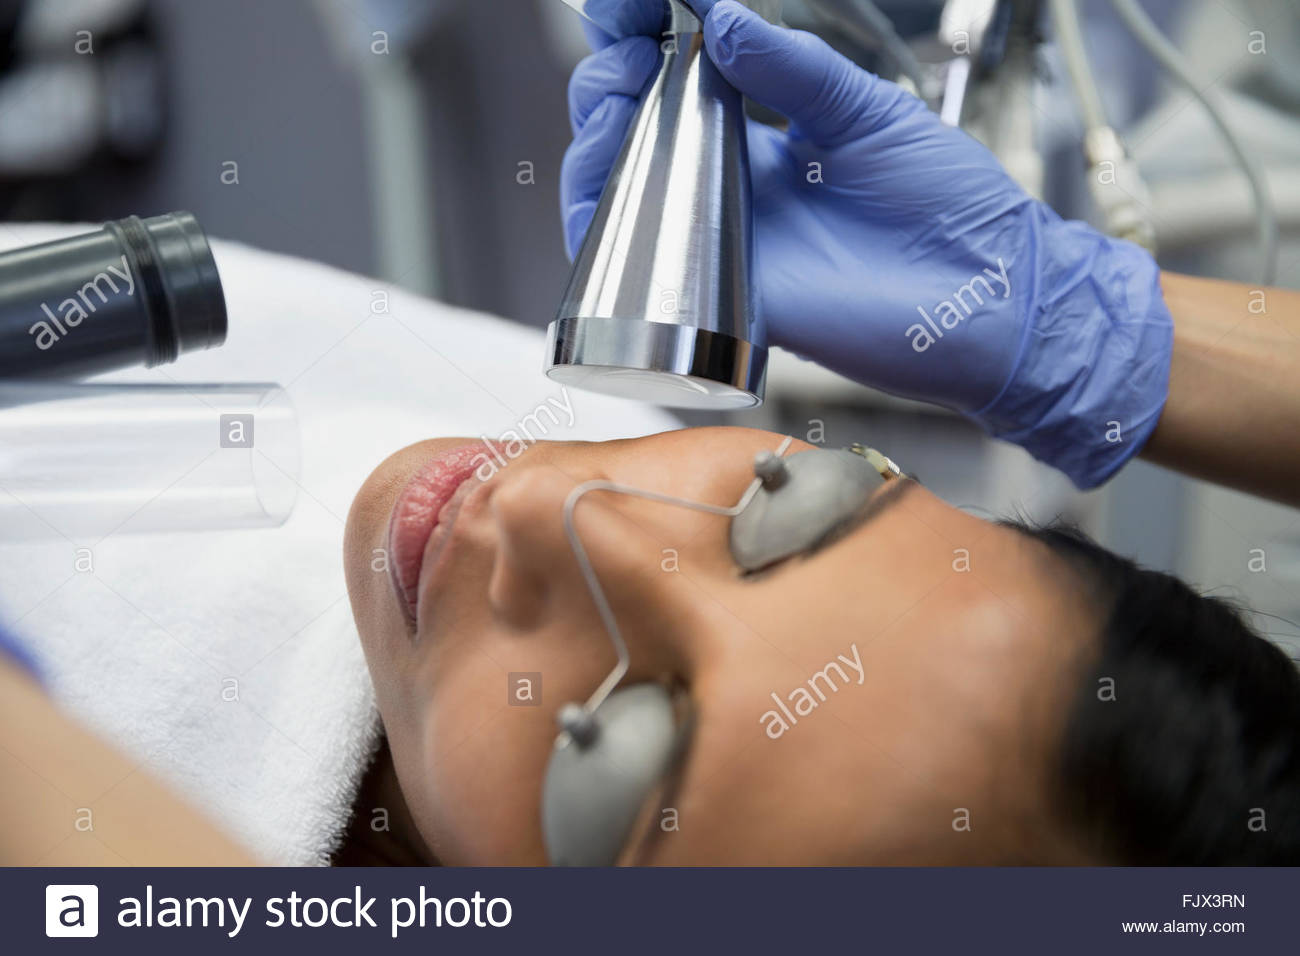 Woman receiving facial treatment - Stock Image